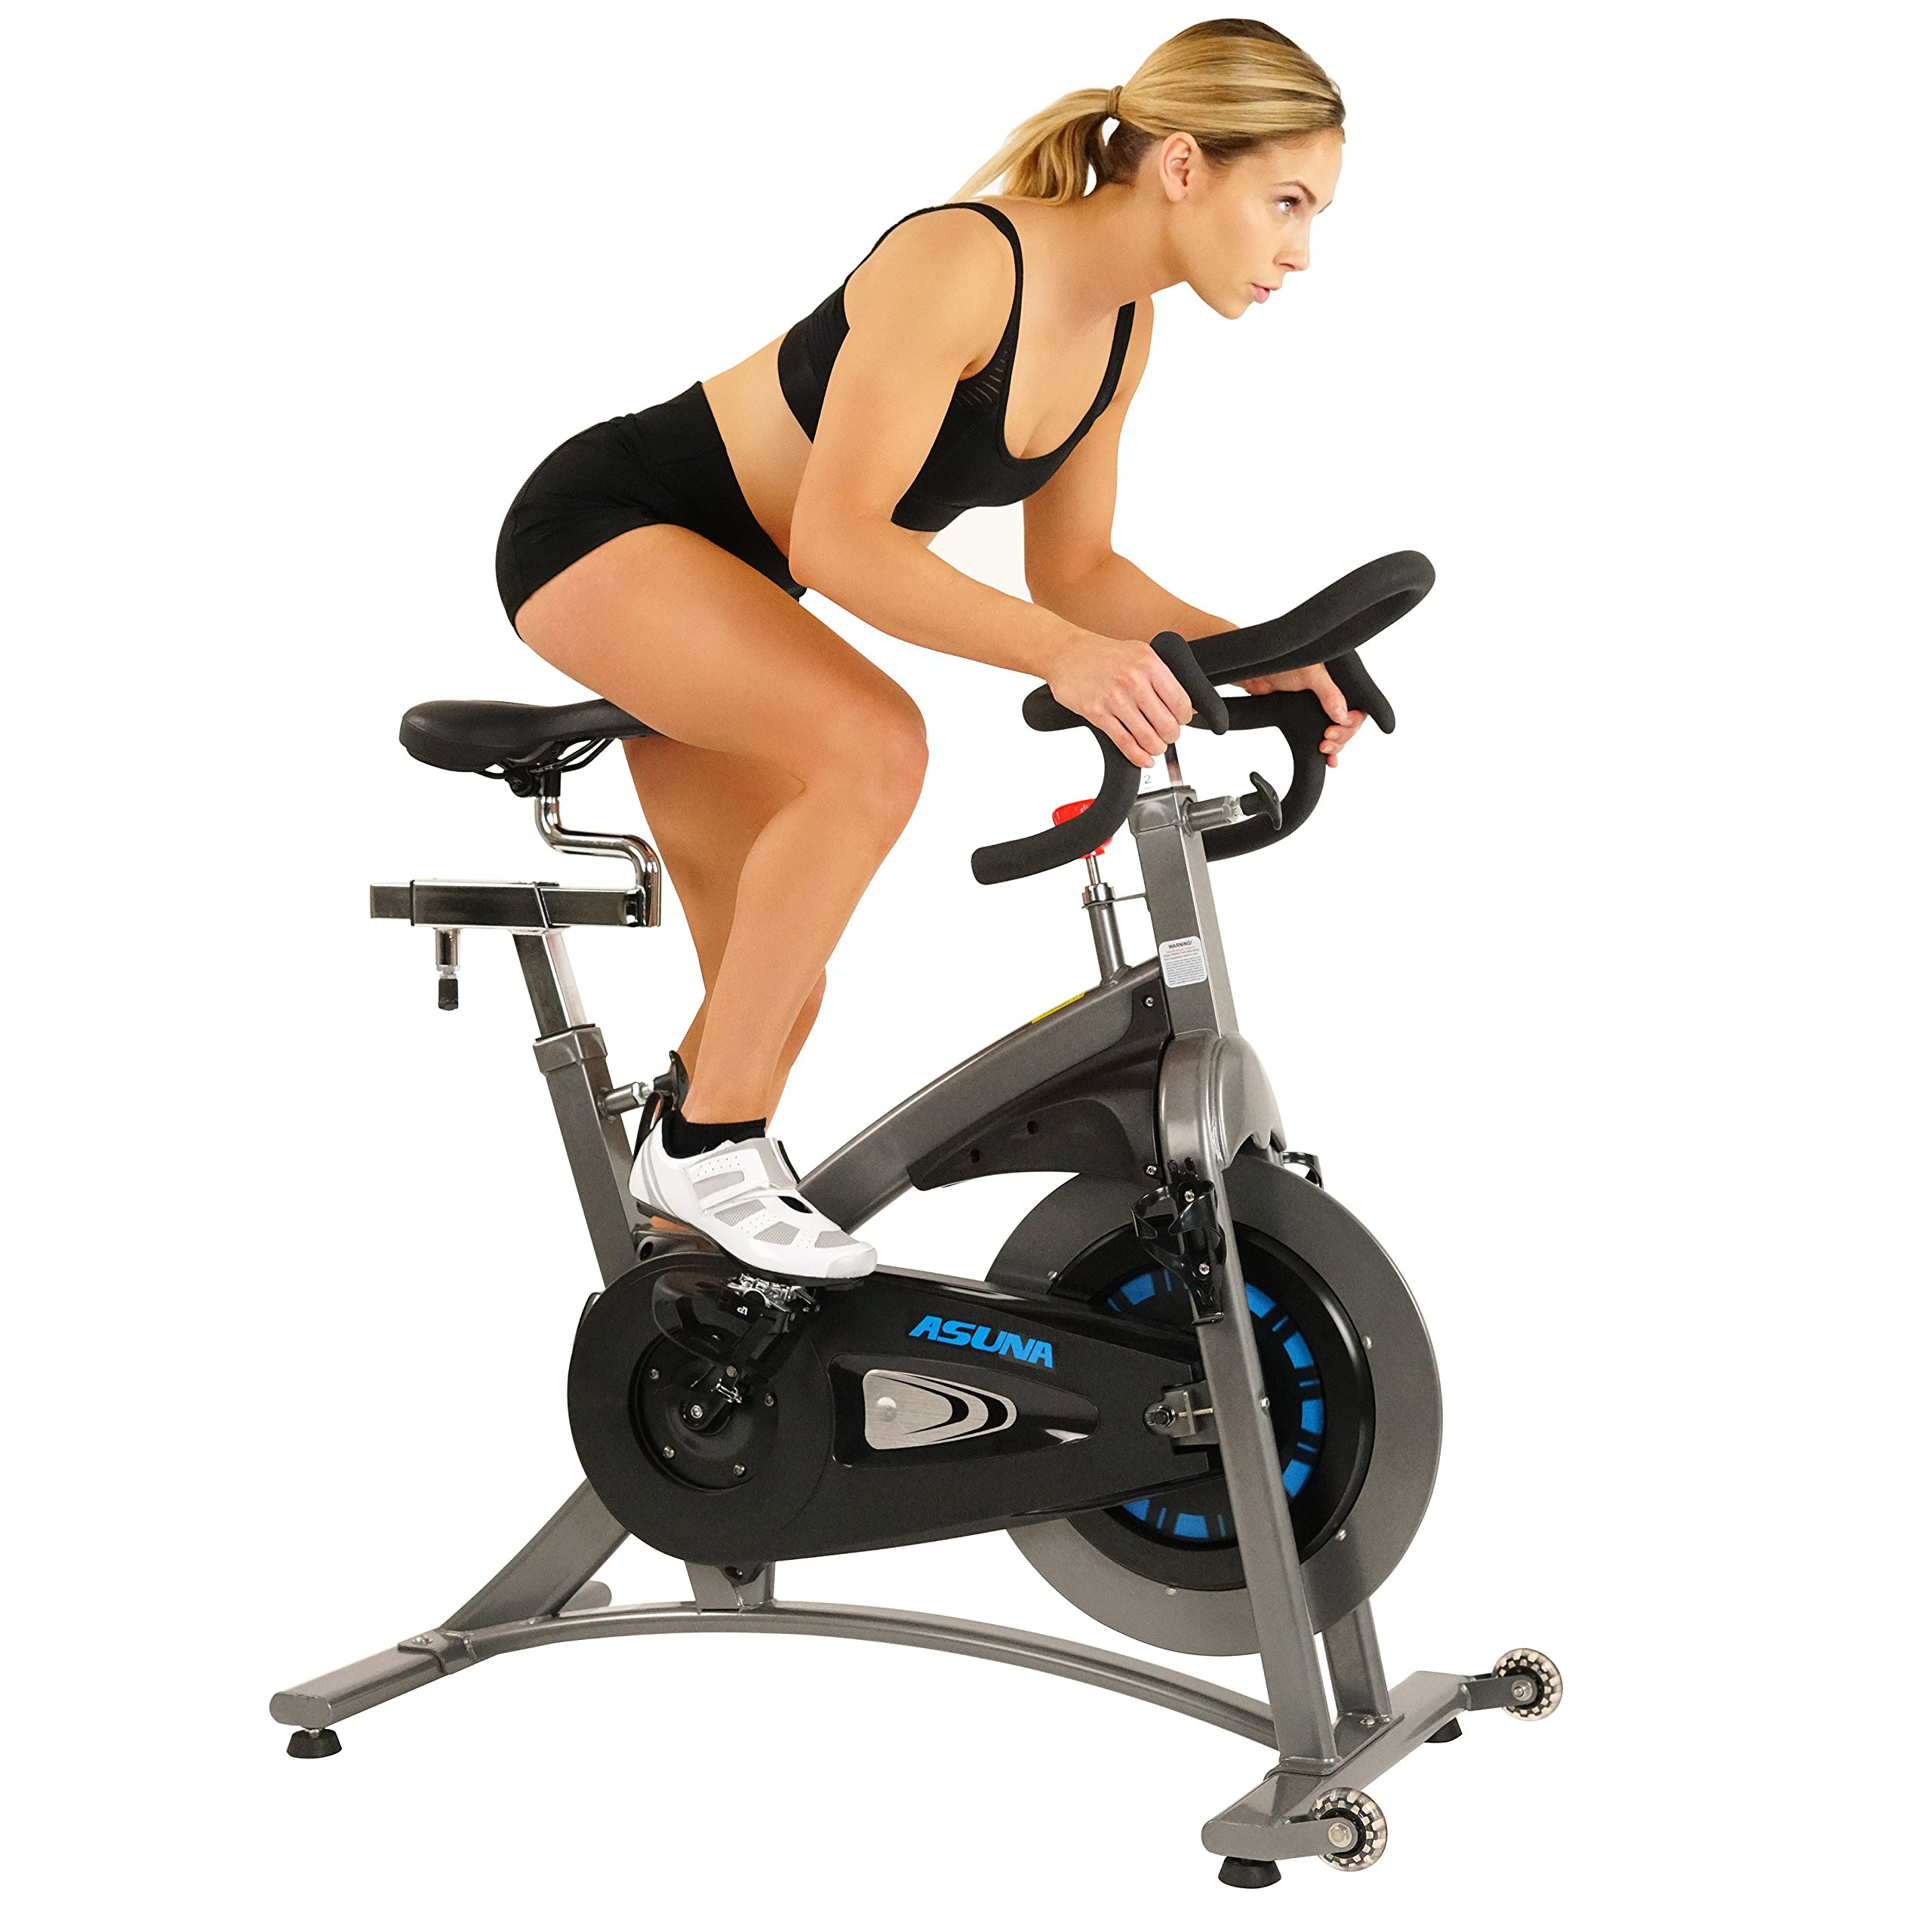 8 Best Magnetic Spin Bike Reviews and Indoor Cycle